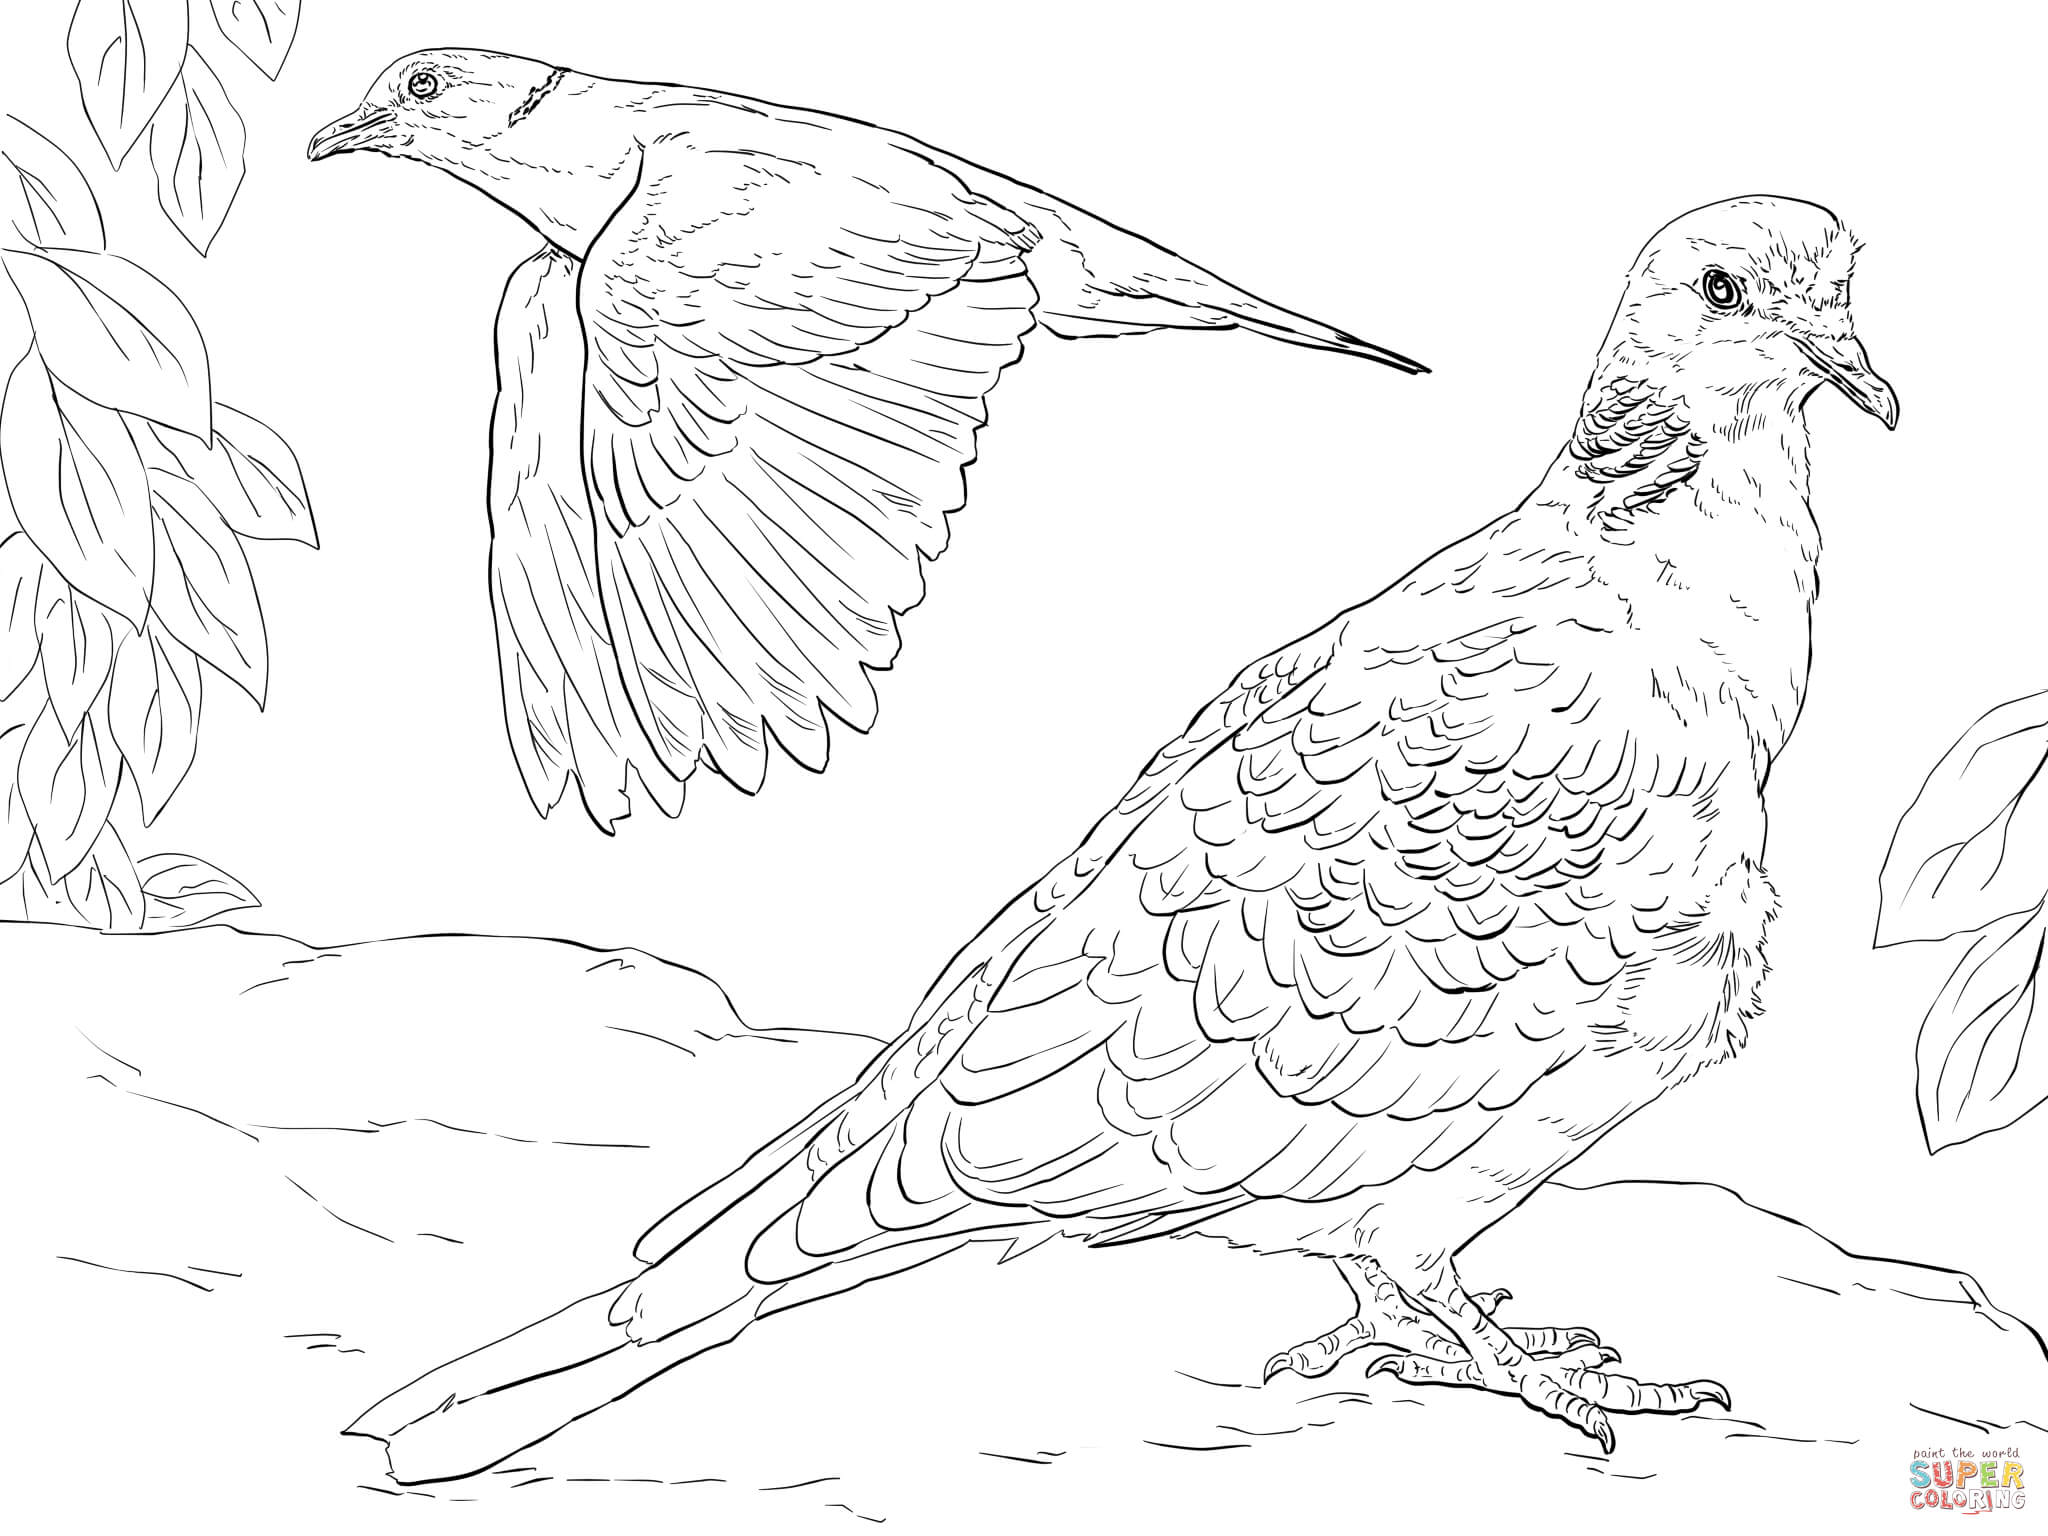 Turtle Dove coloring, Download Turtle Dove coloring for